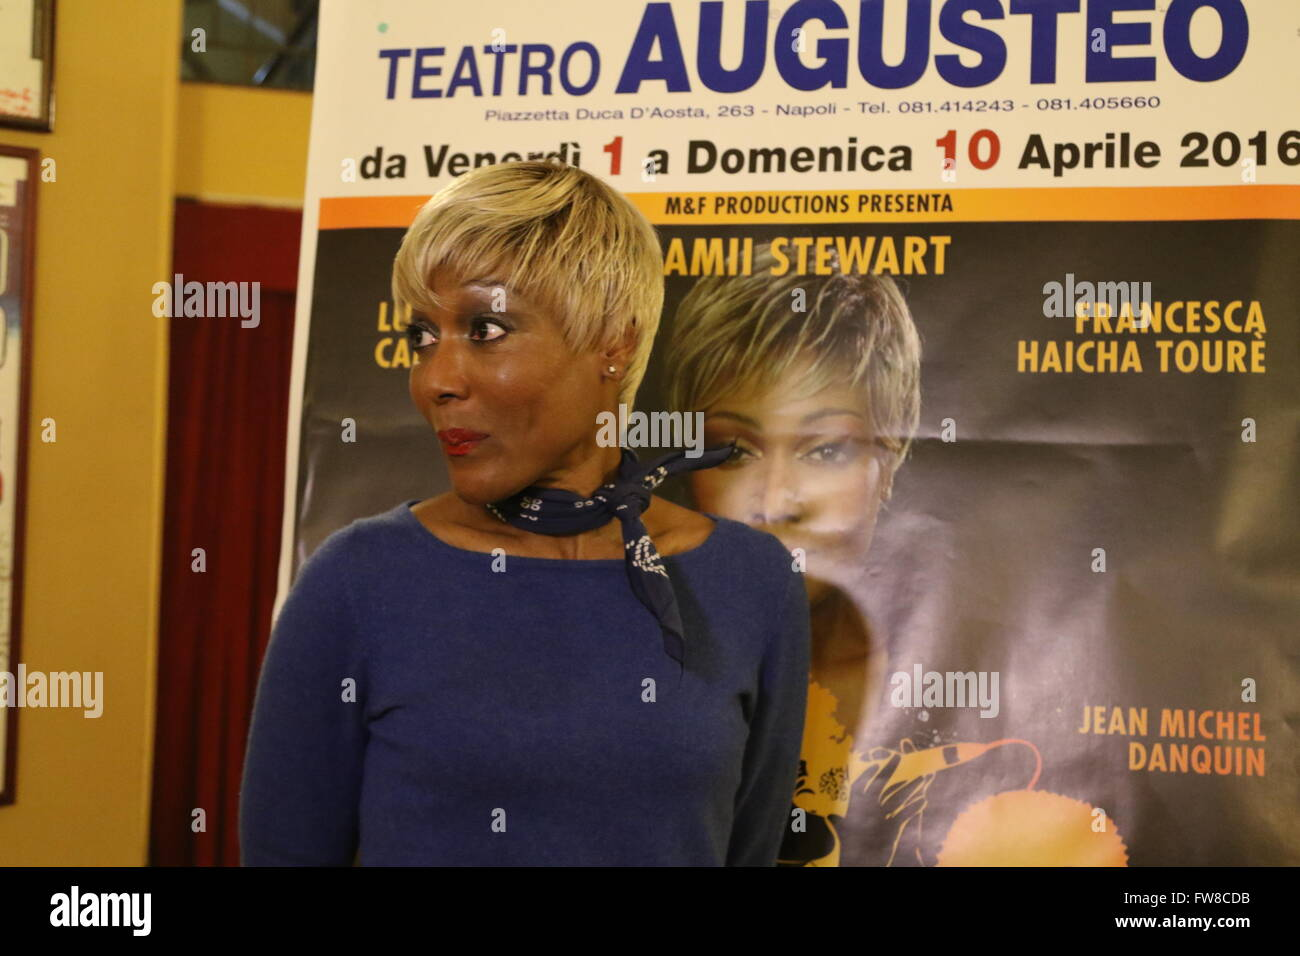 Napoli, Italy. 01st Apr, 2016. Amii Stewart during the press conference in the foyer of the Teatro Augusteo in Napoli. Stock Photo